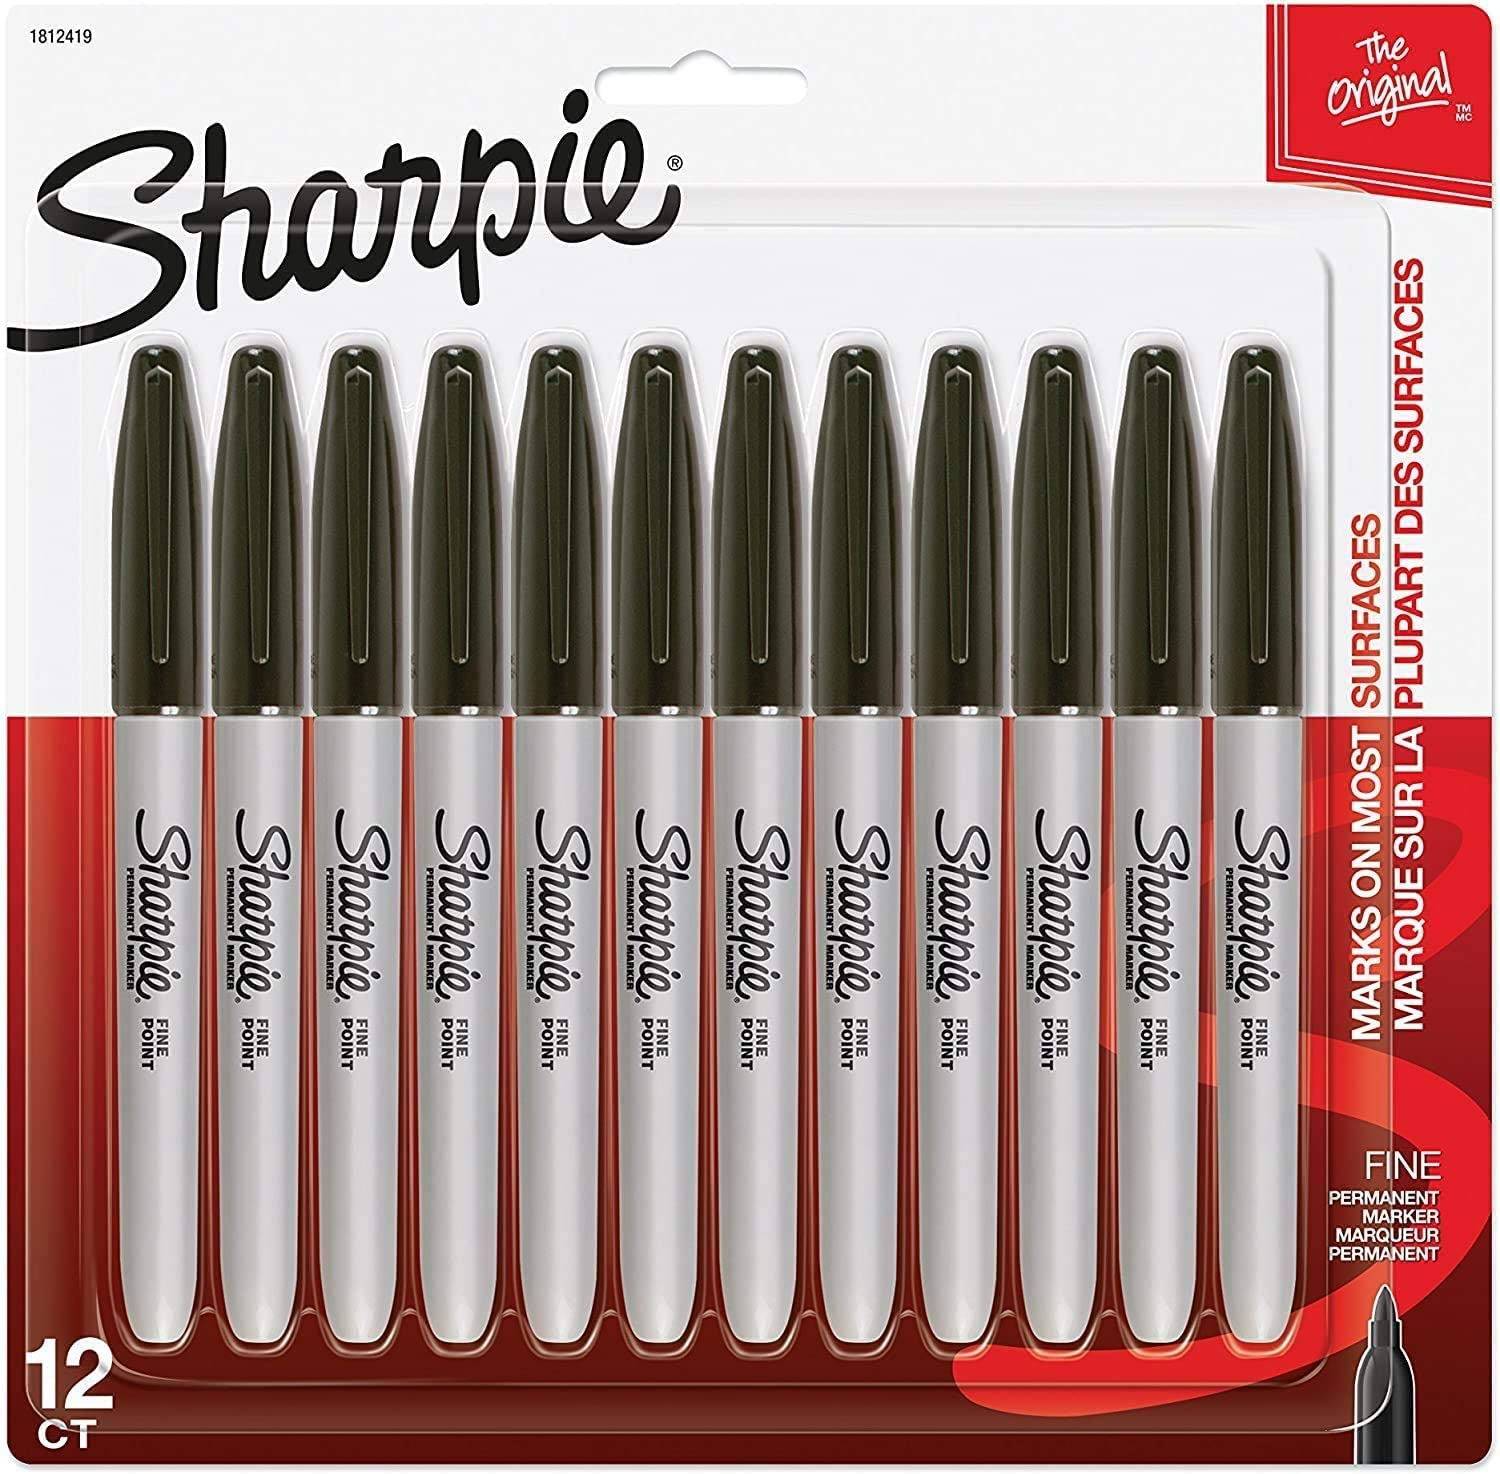 1 Pack of 12 Black Fine Point Sharpie Permanent Markers